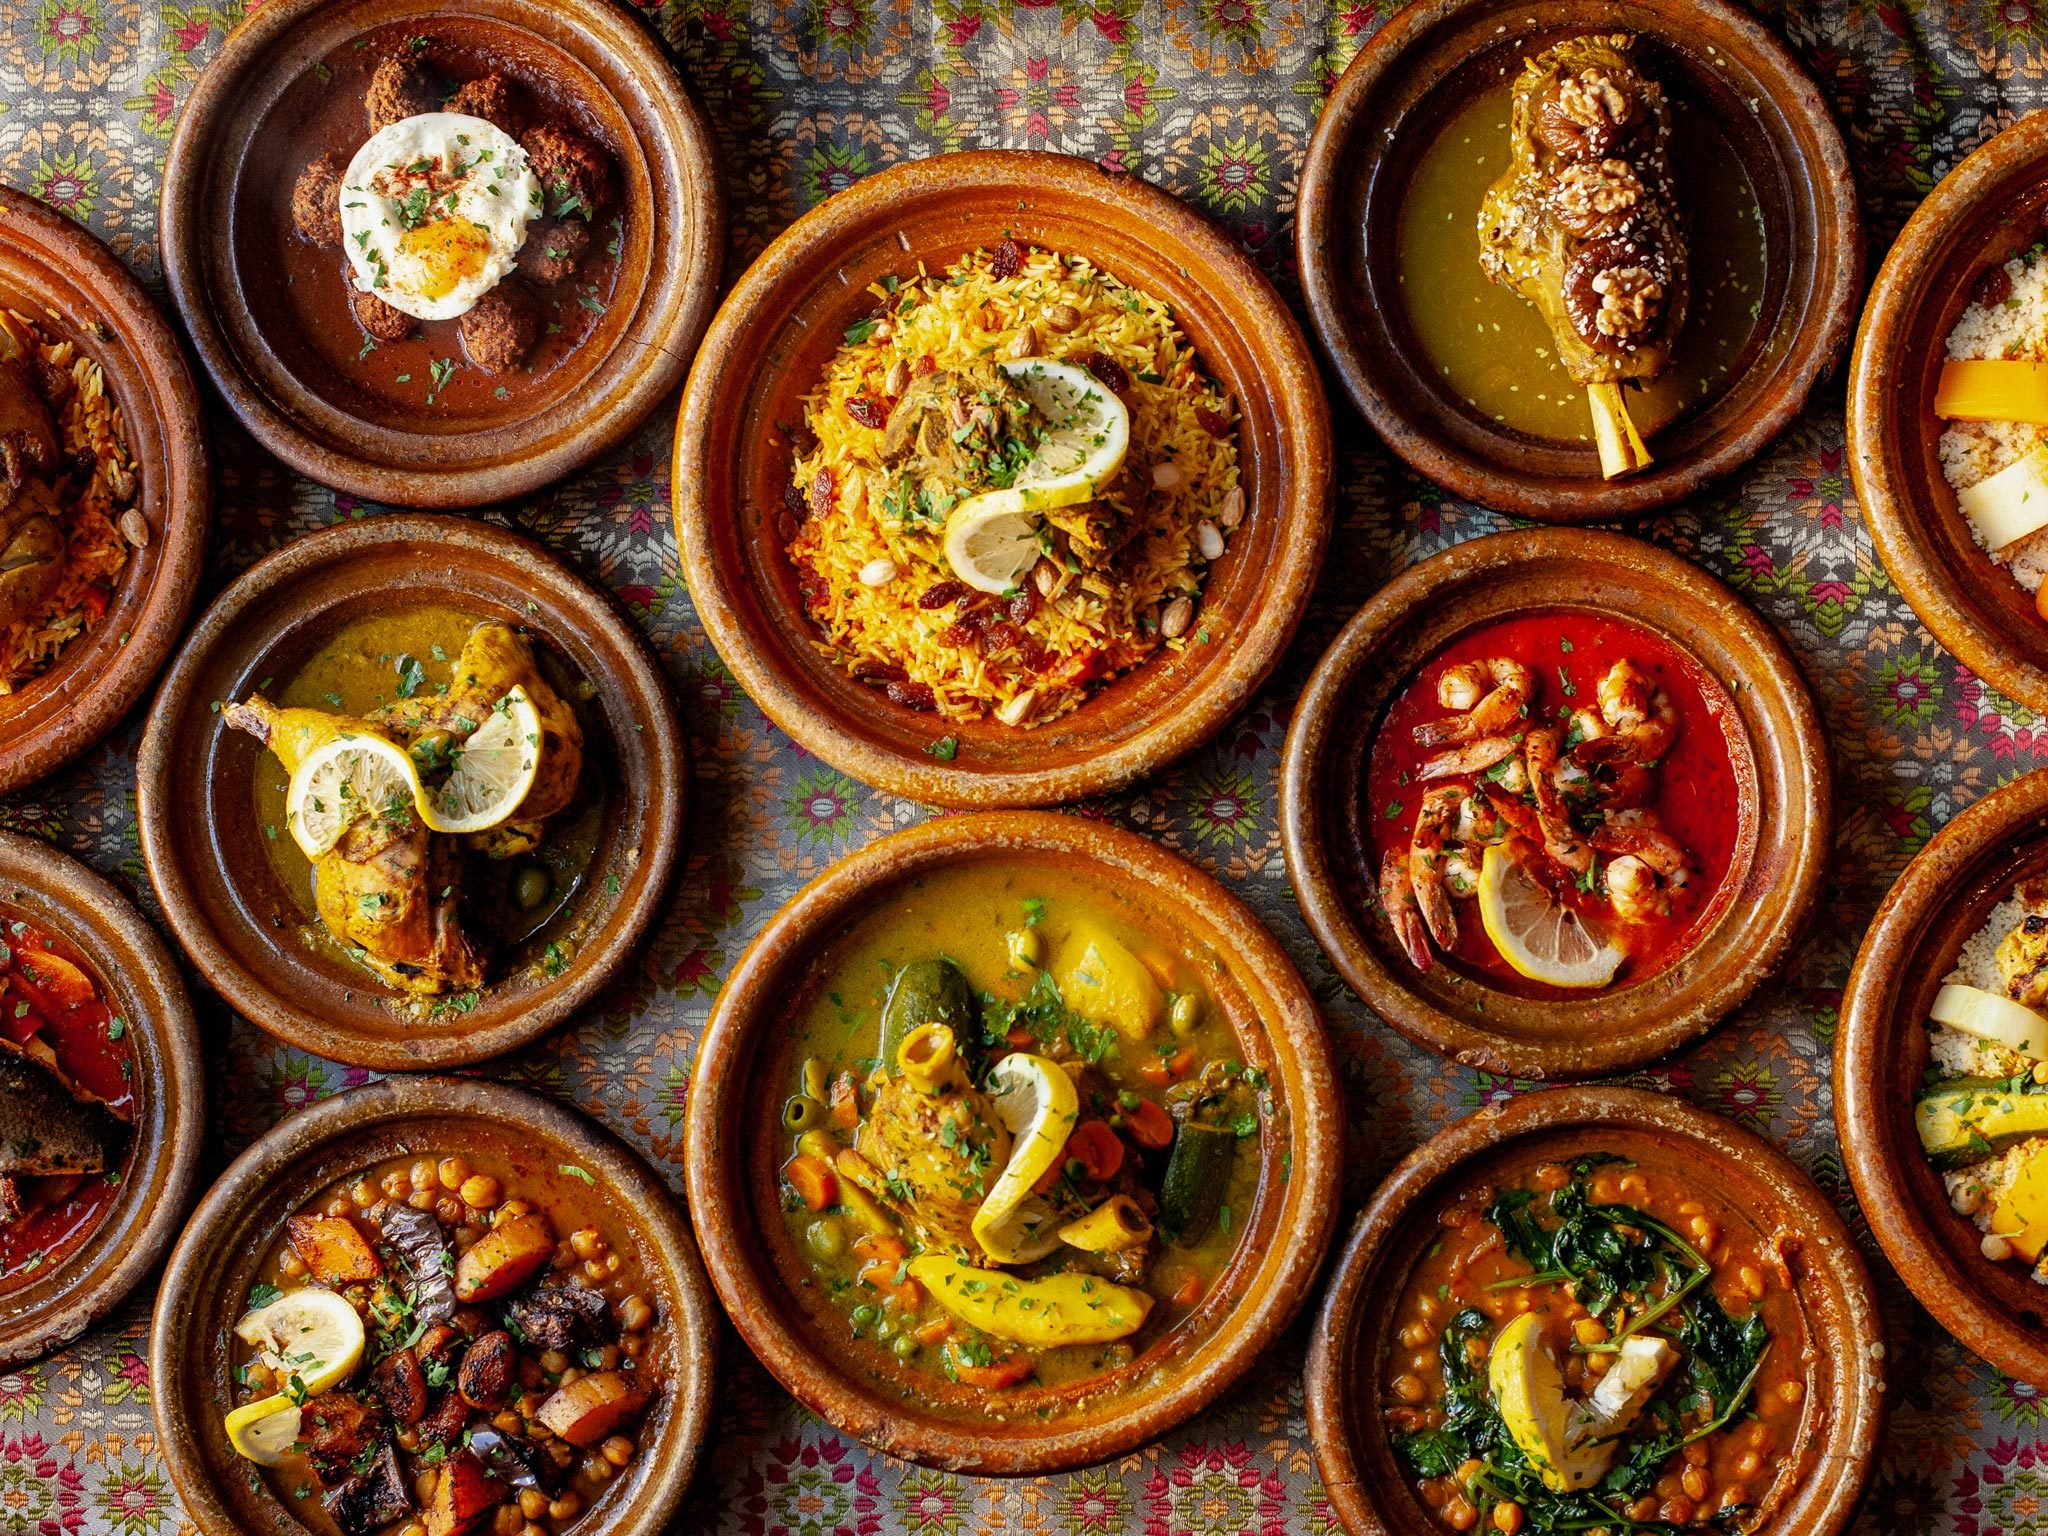 A selection of dishes at Kasbah restaurant in Liverpool